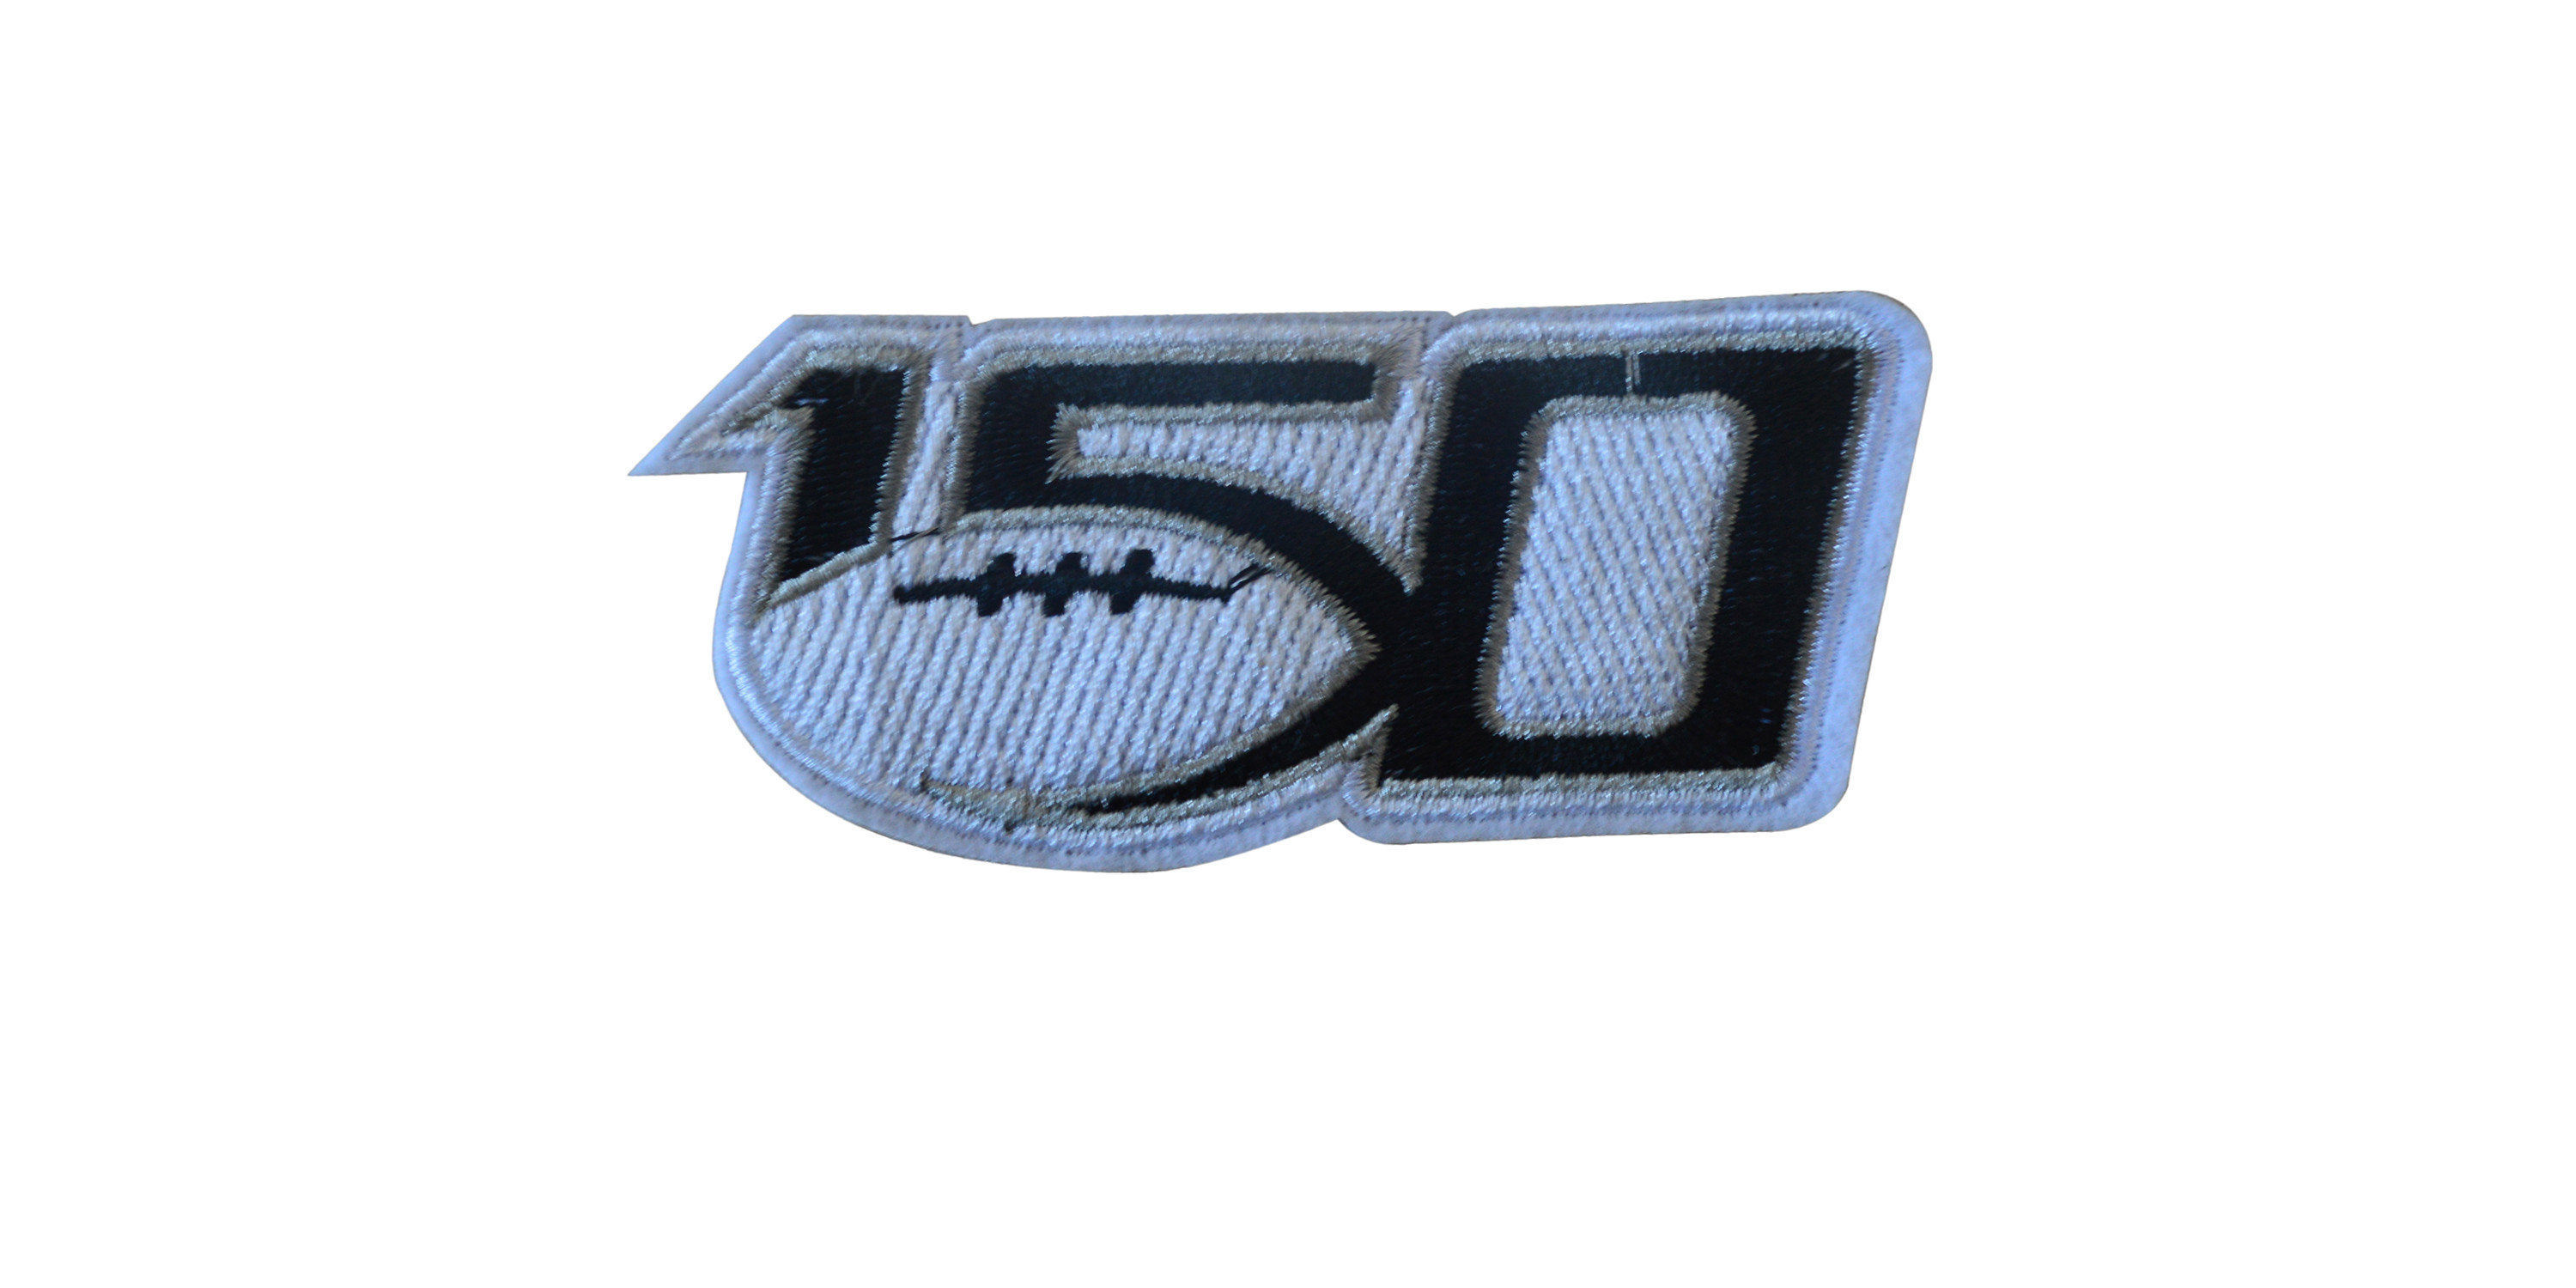 NCAA College Football 150th Anniversary Patch 2019